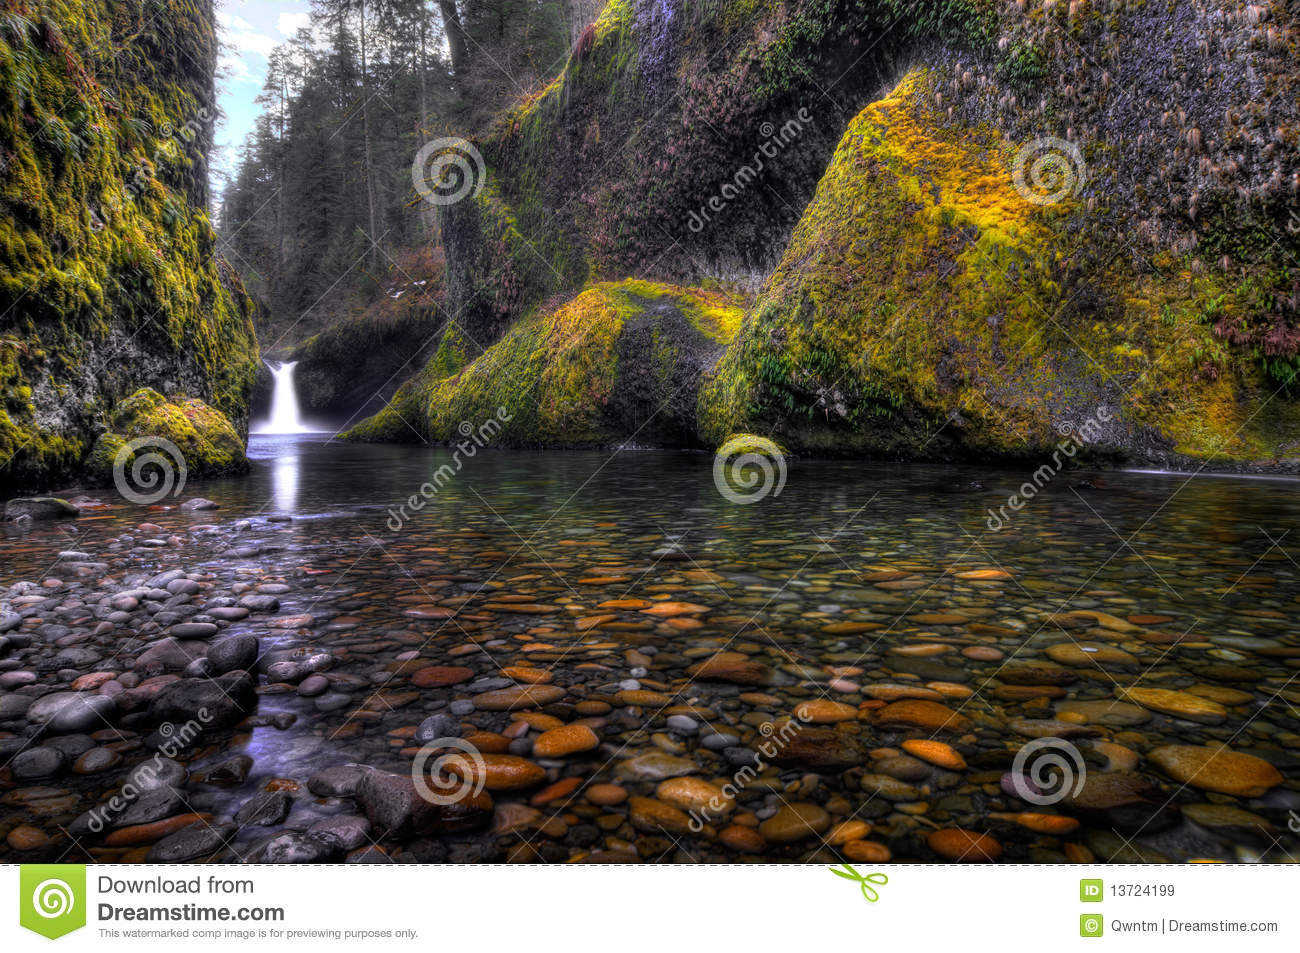 Punch Bowl Falls clipart #15, Download drawings